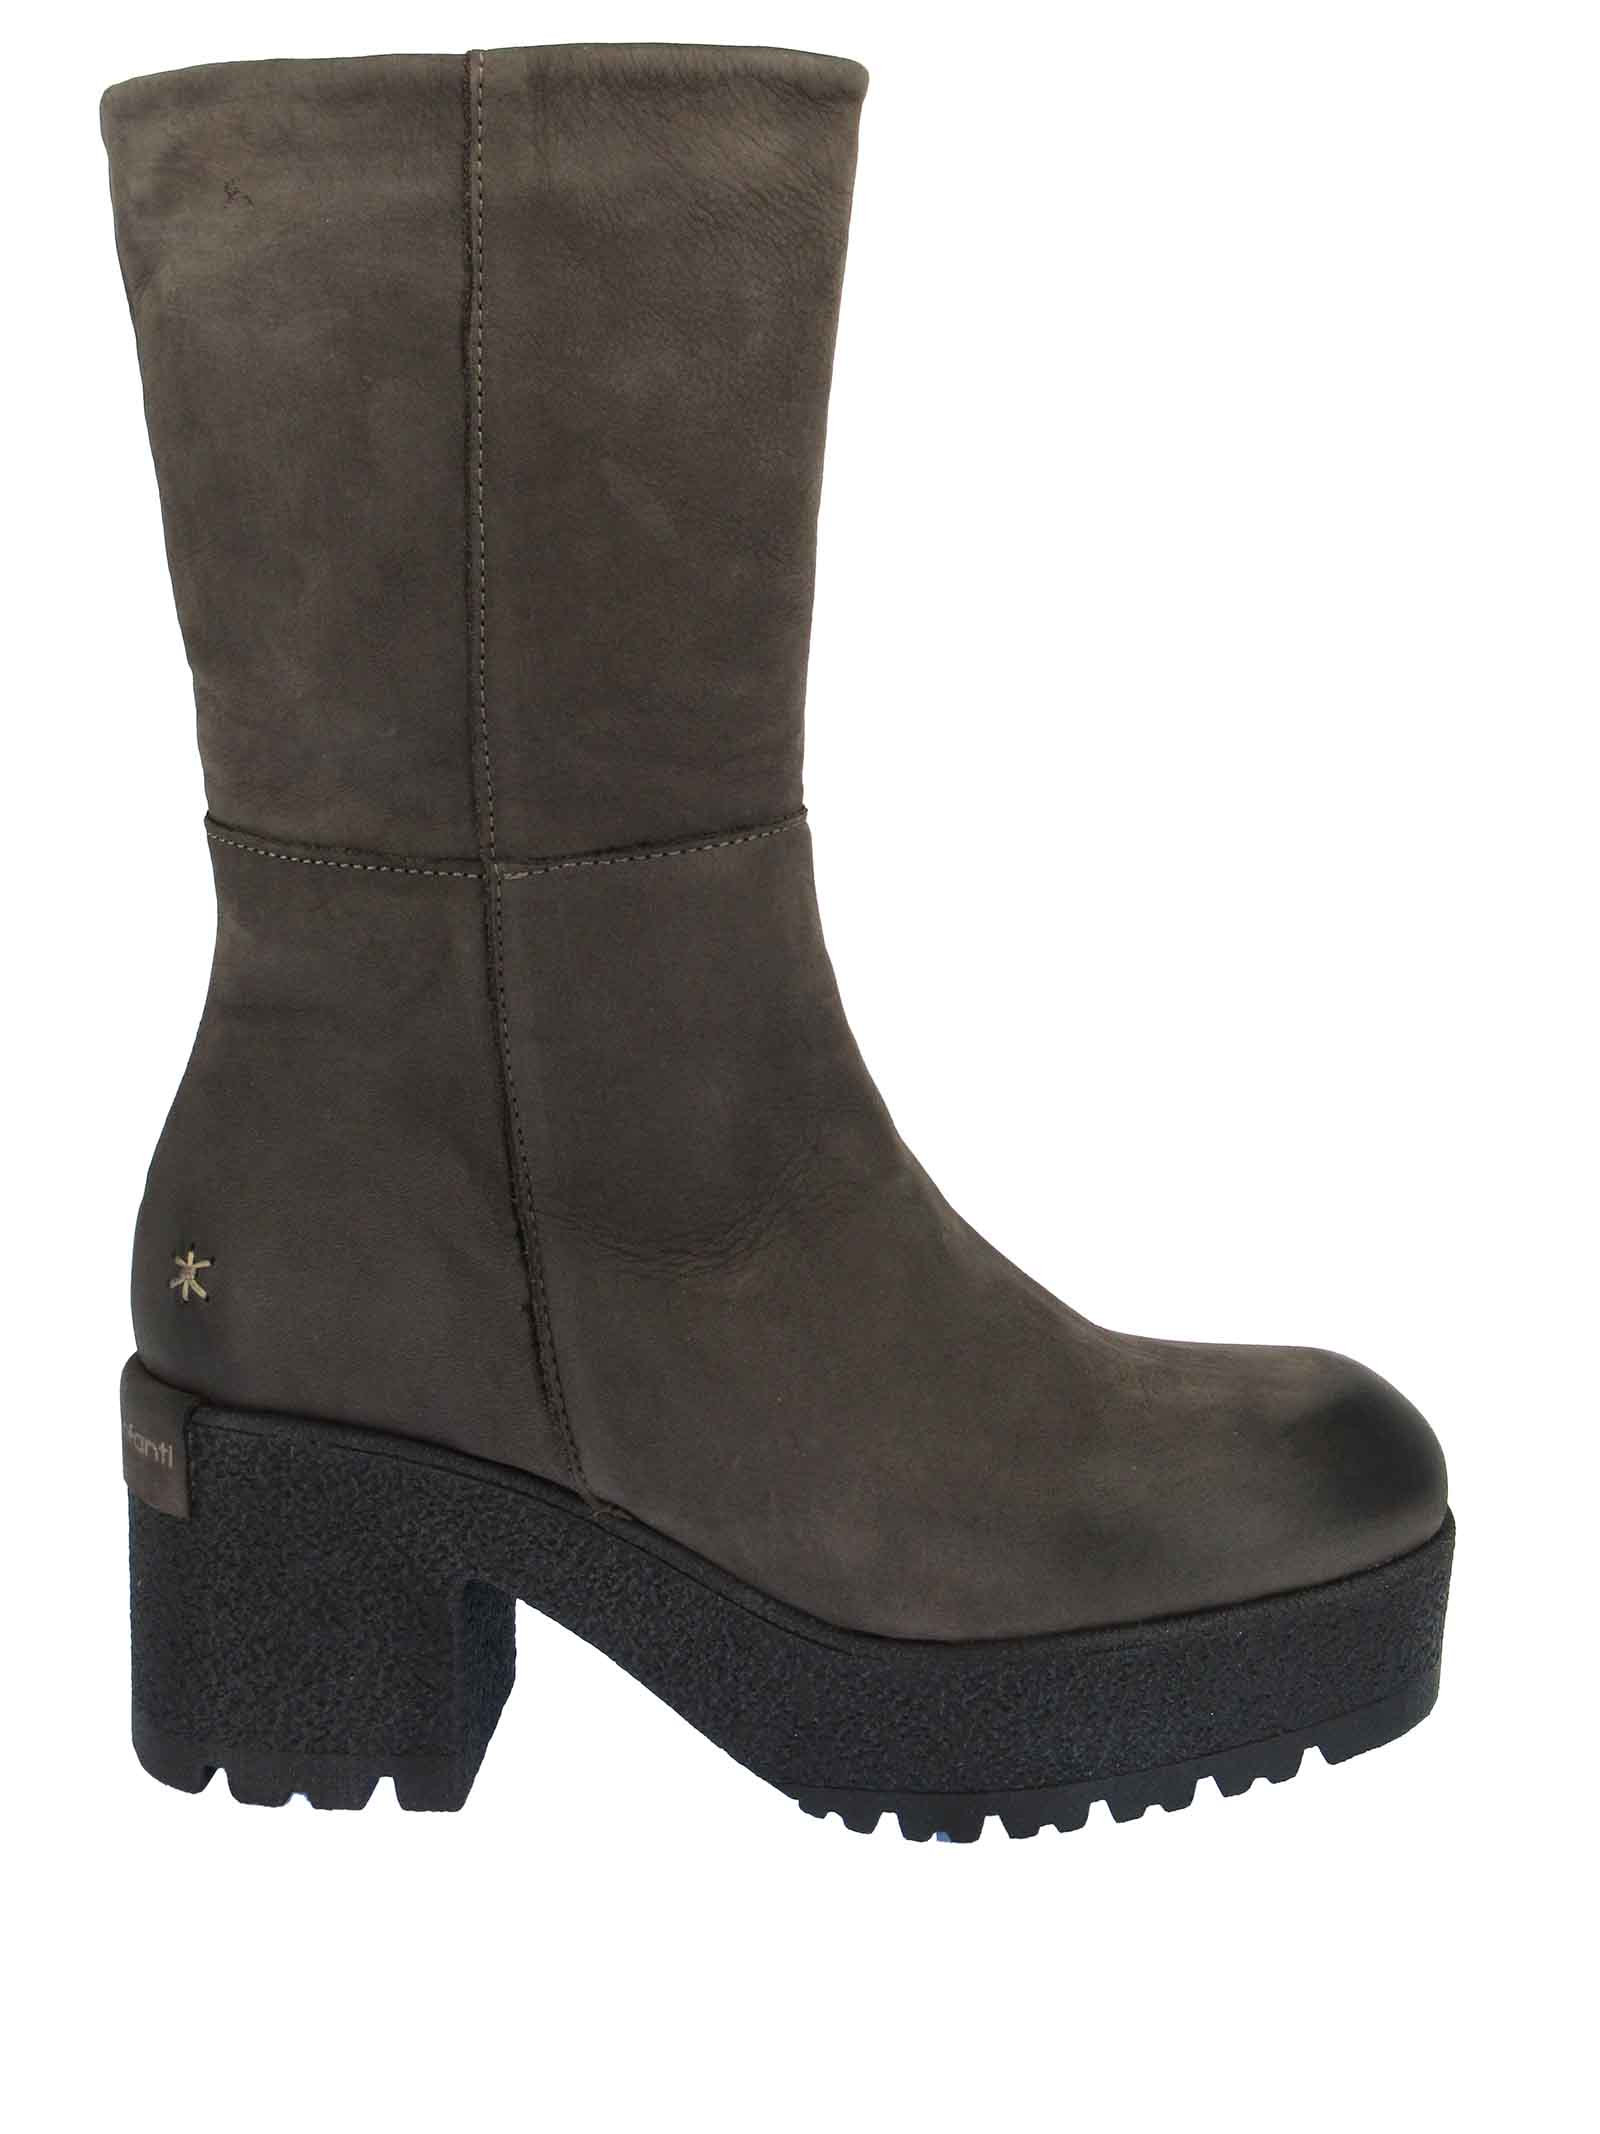 Women's Shoes Ankle Boots in Mud Matt Leather with High Tone on Tone Para Effect Sole Patrizia Bonfanti | Ankle Boots | ZADIE022